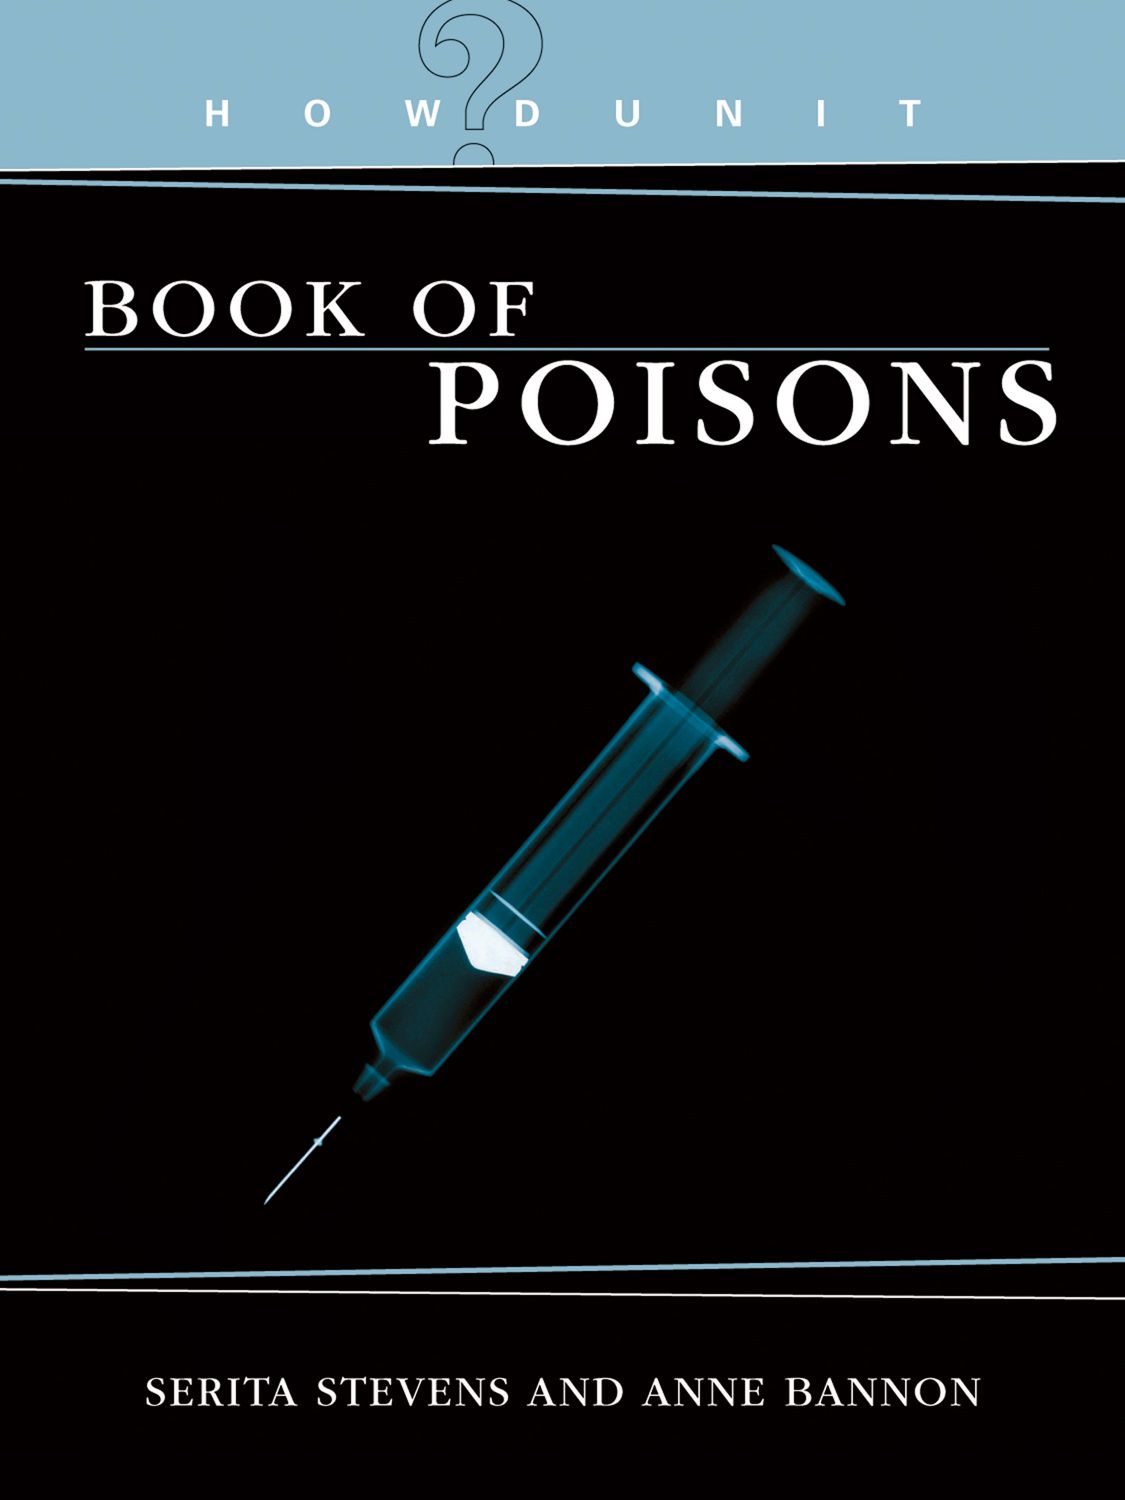 HowDunit - The Book of Poisons By: Anne Bannon,Serita Stevens